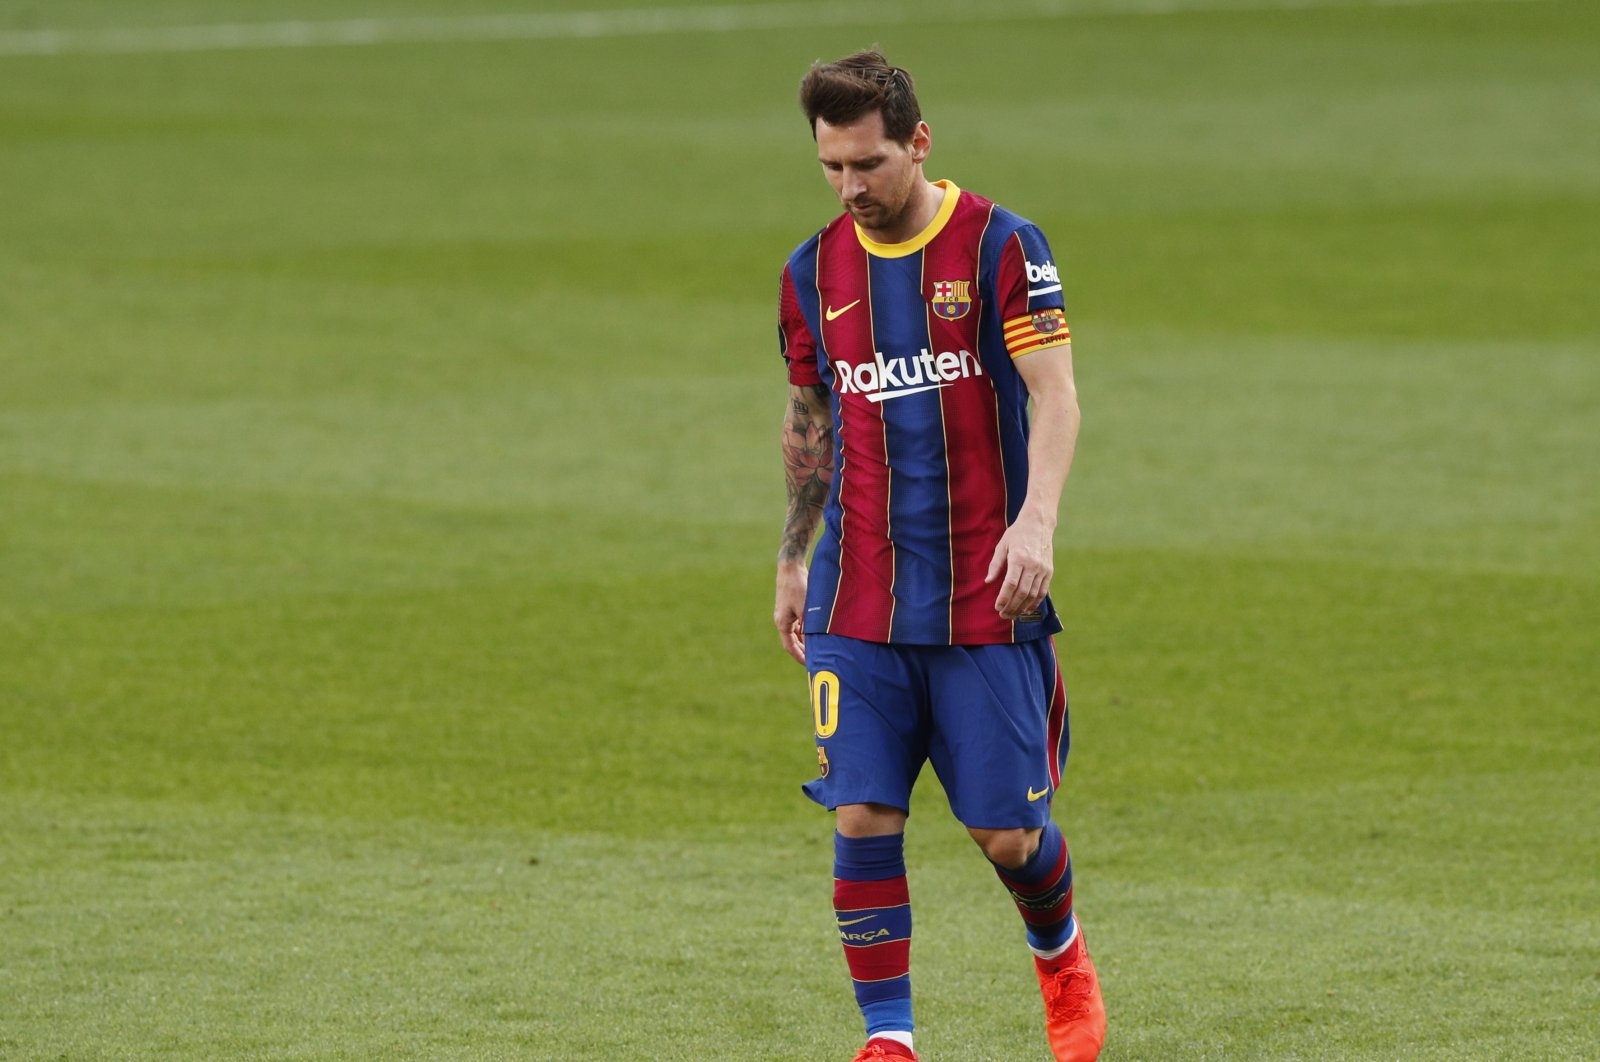 Barcelona's Lionel Messi looks dejected after the La Liga match against Real Madrid, in Barcelona, Spain, Oct. 24, 2020. (Reuters Photo)